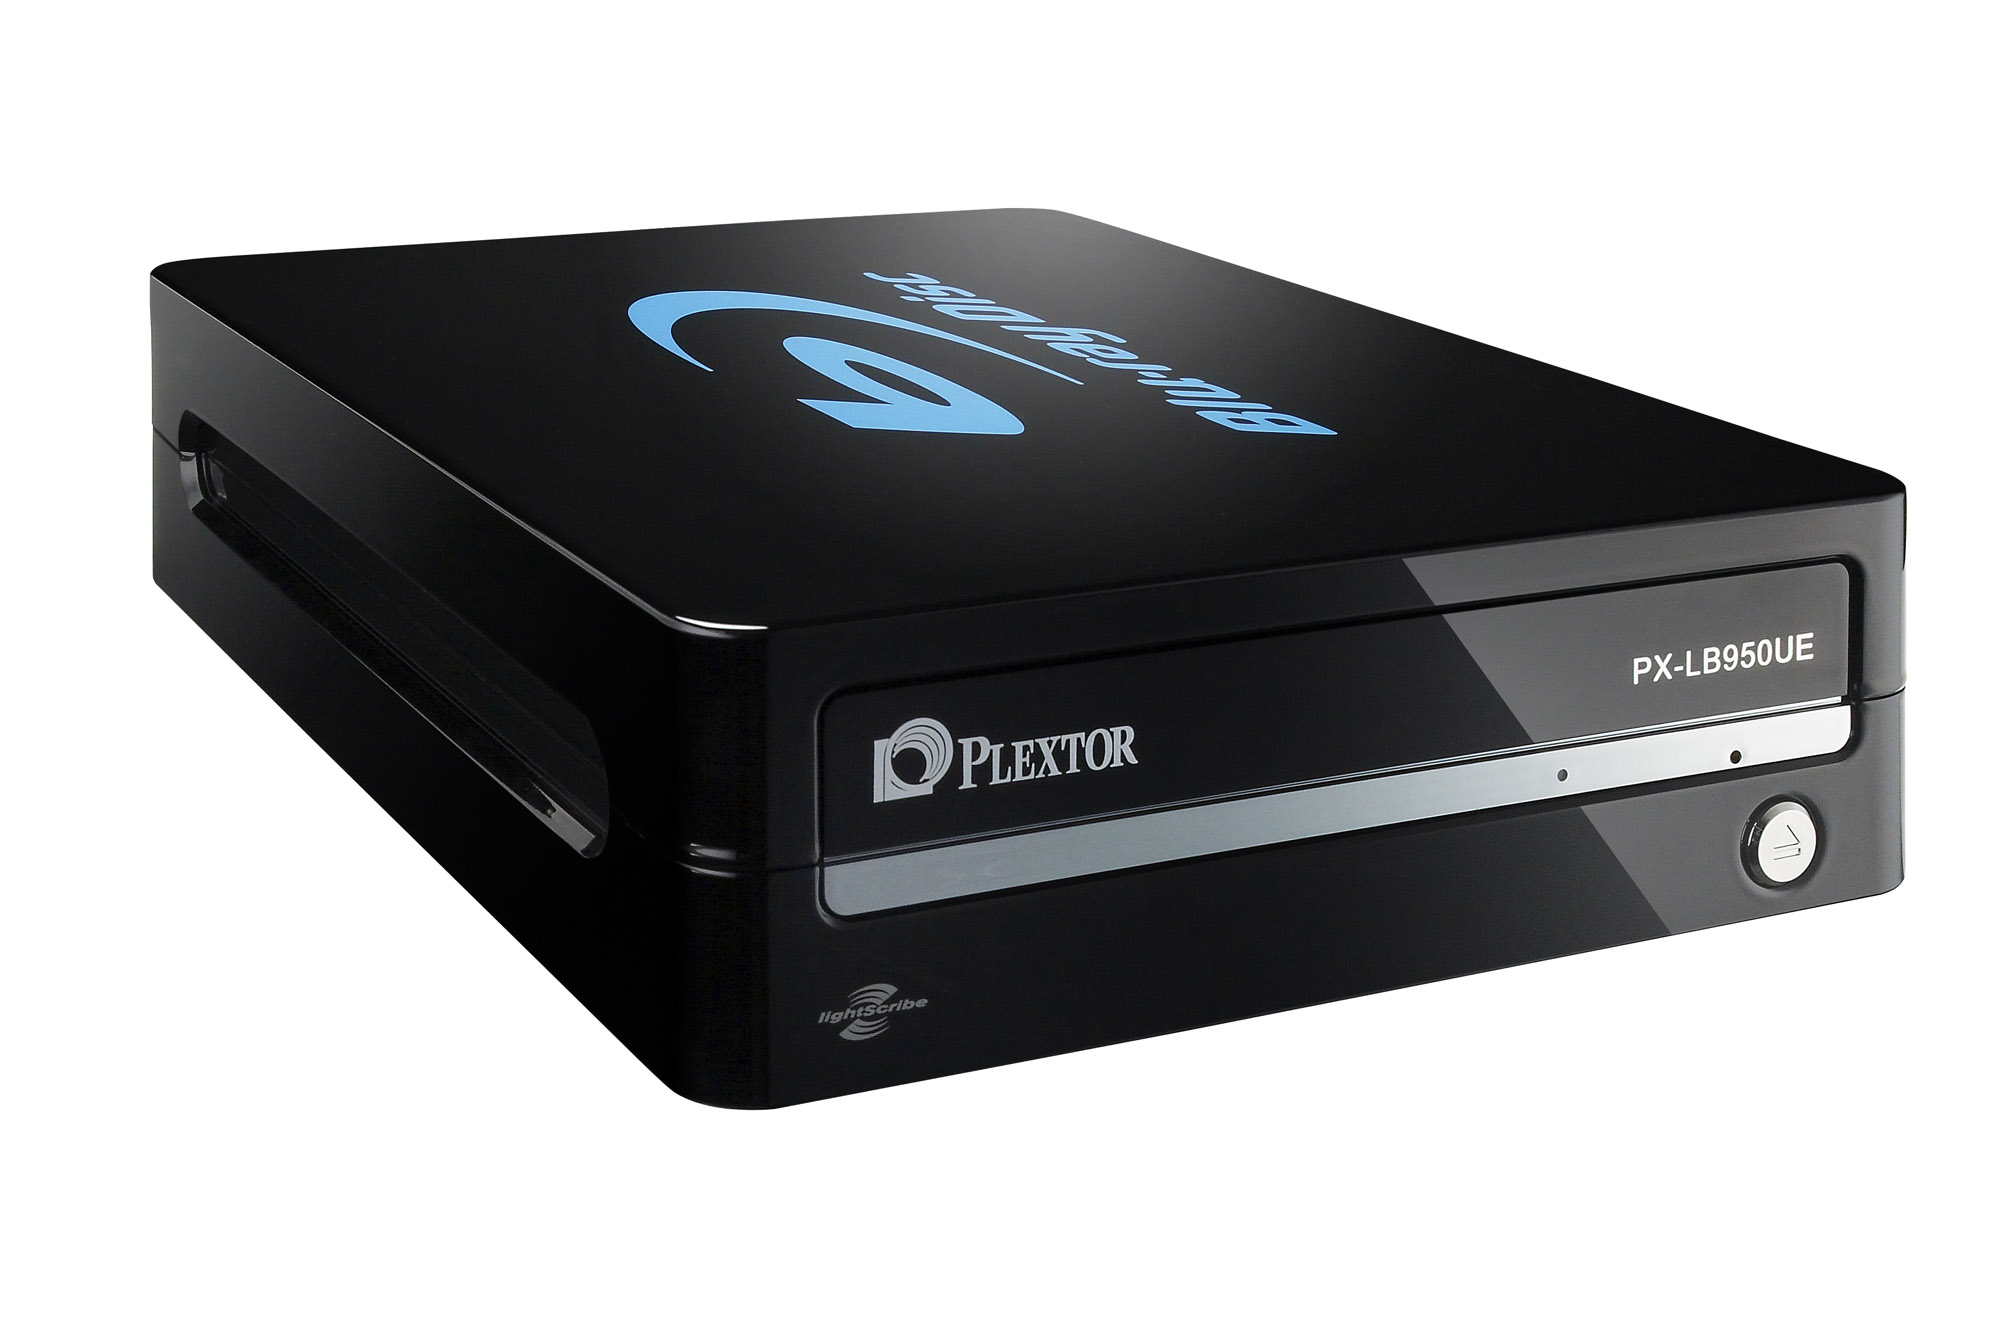 Plextor outs USB 3.0 capable 12X External Blu-ray Burner